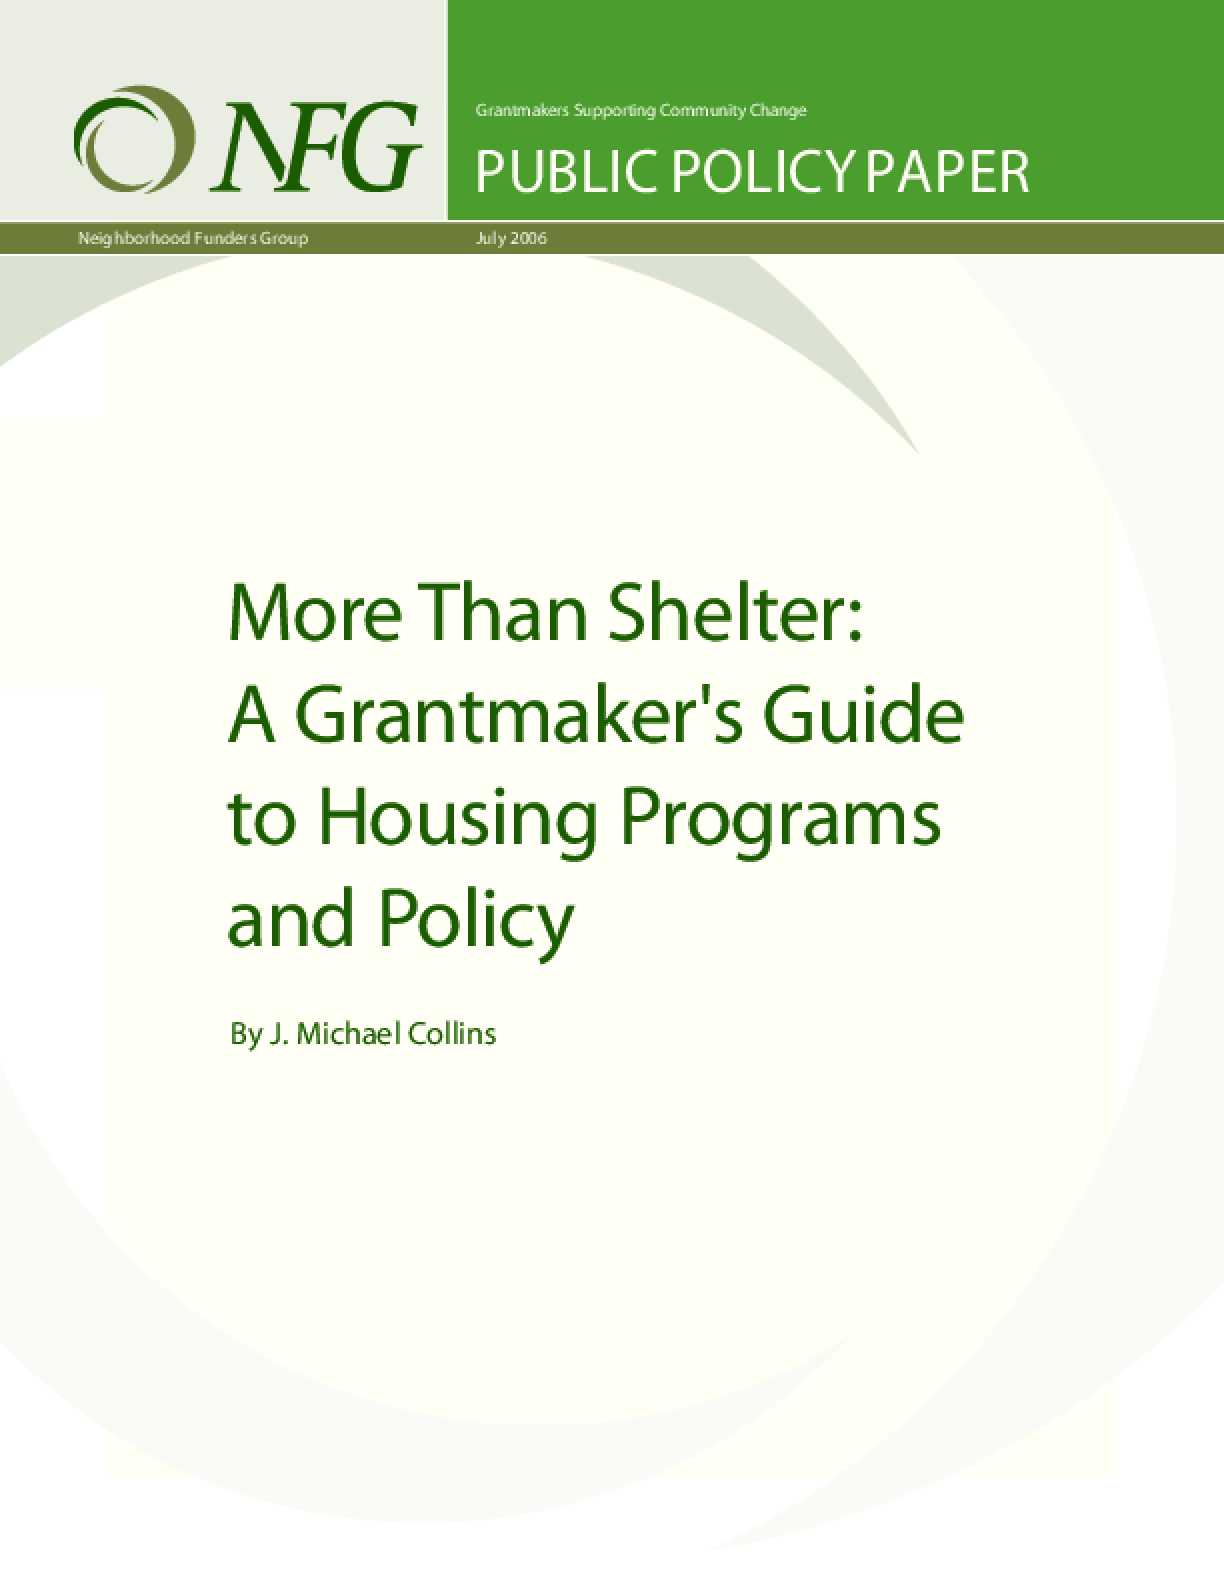 More Than Shelter: A Grantmaker's Guide to Housing Programs and Policy